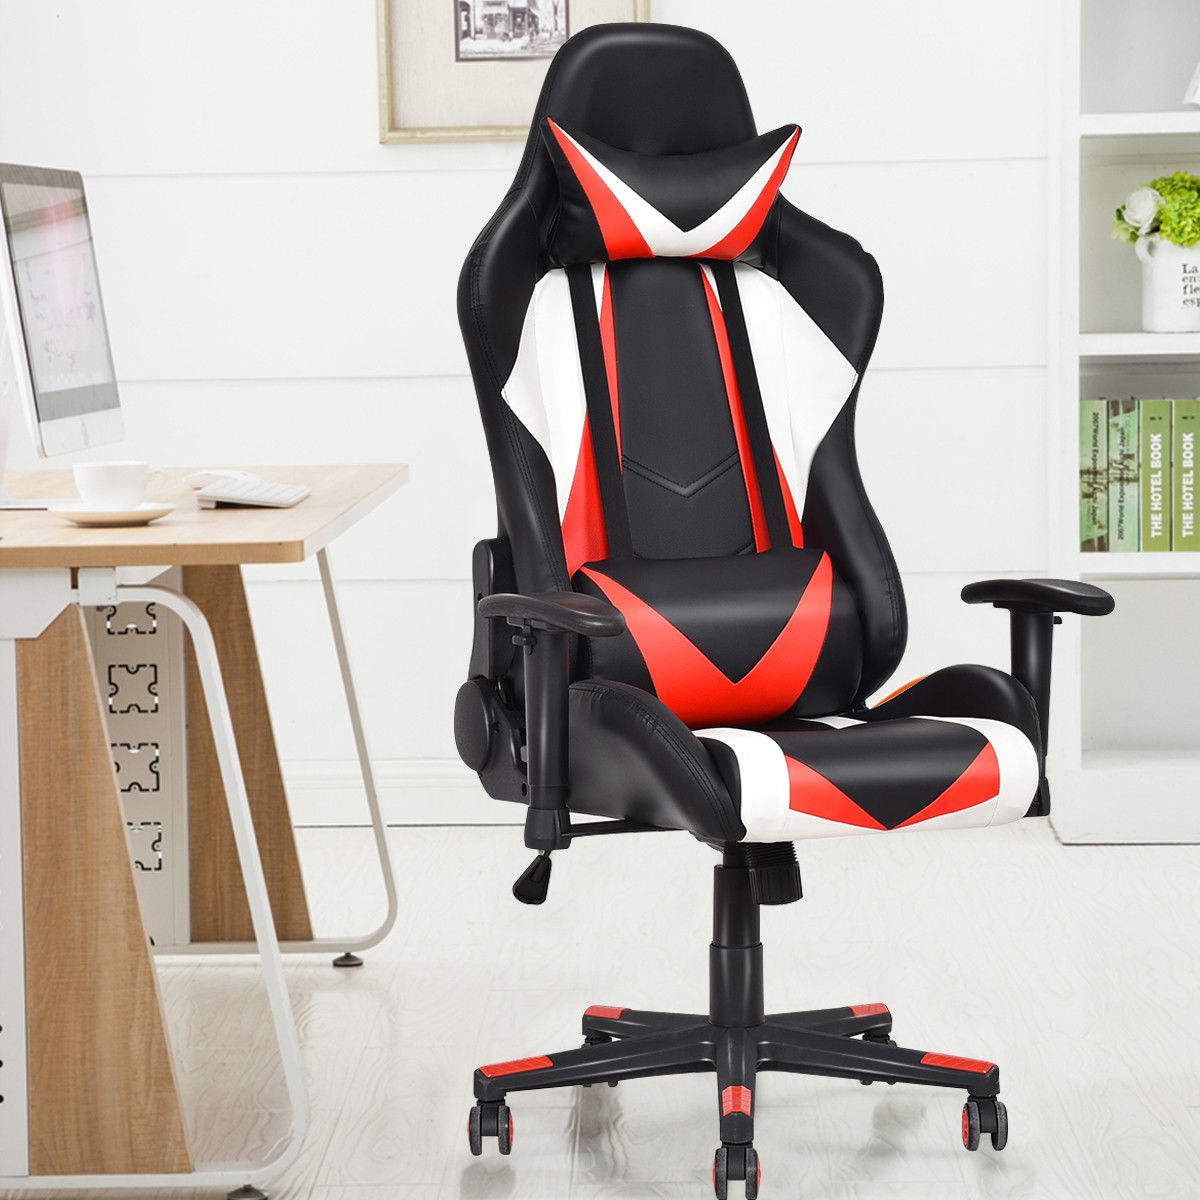 recliner gaming chair clear mat giantex racing style high back executive office computer chairs modern offfice furniture hw55607 in from on